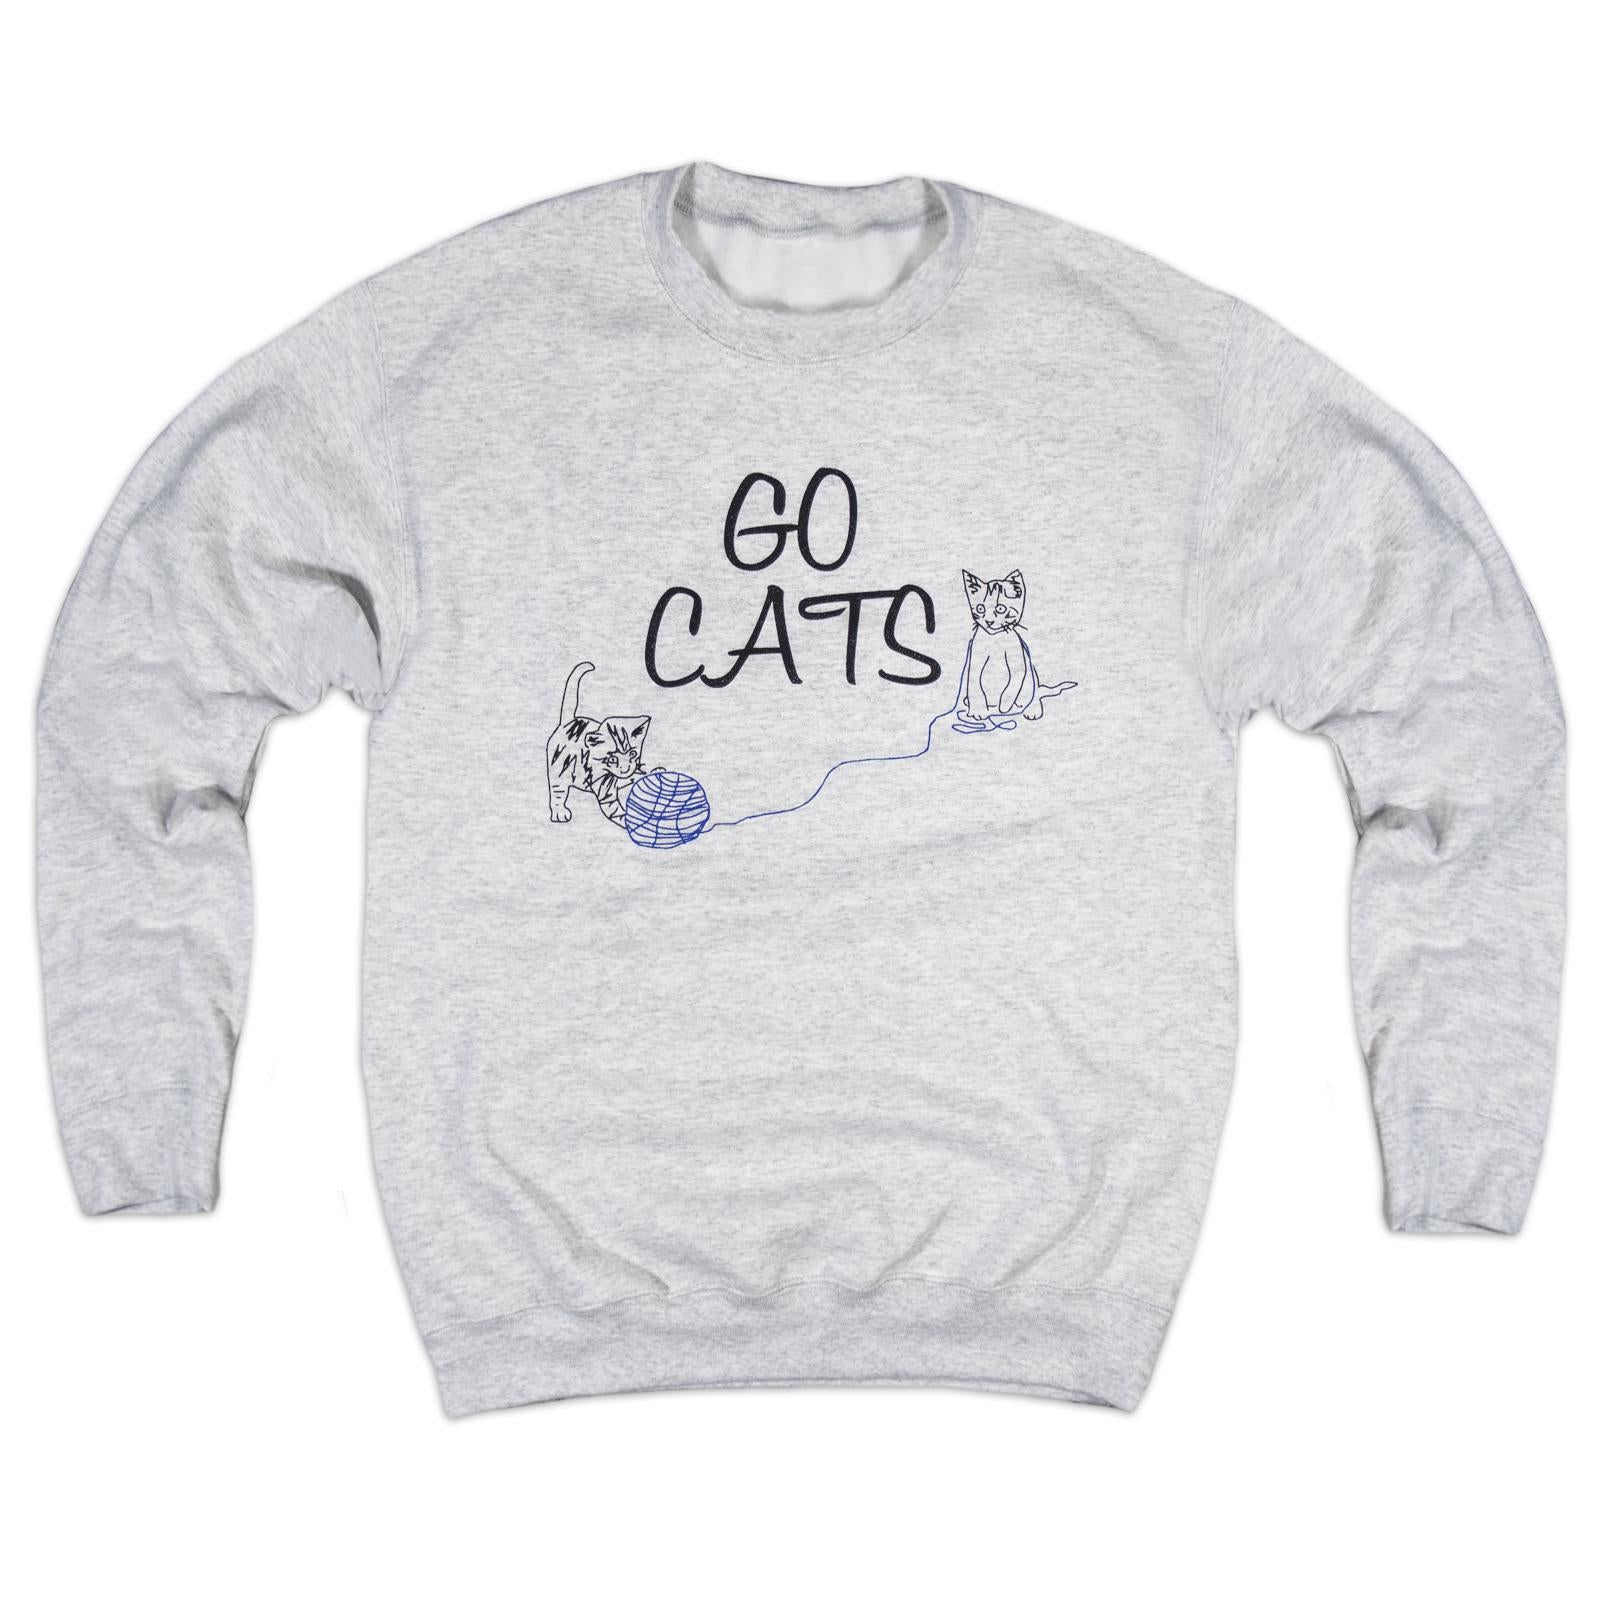 Go Cats Sweatshirt-Sweatshirt-KY for KY Store